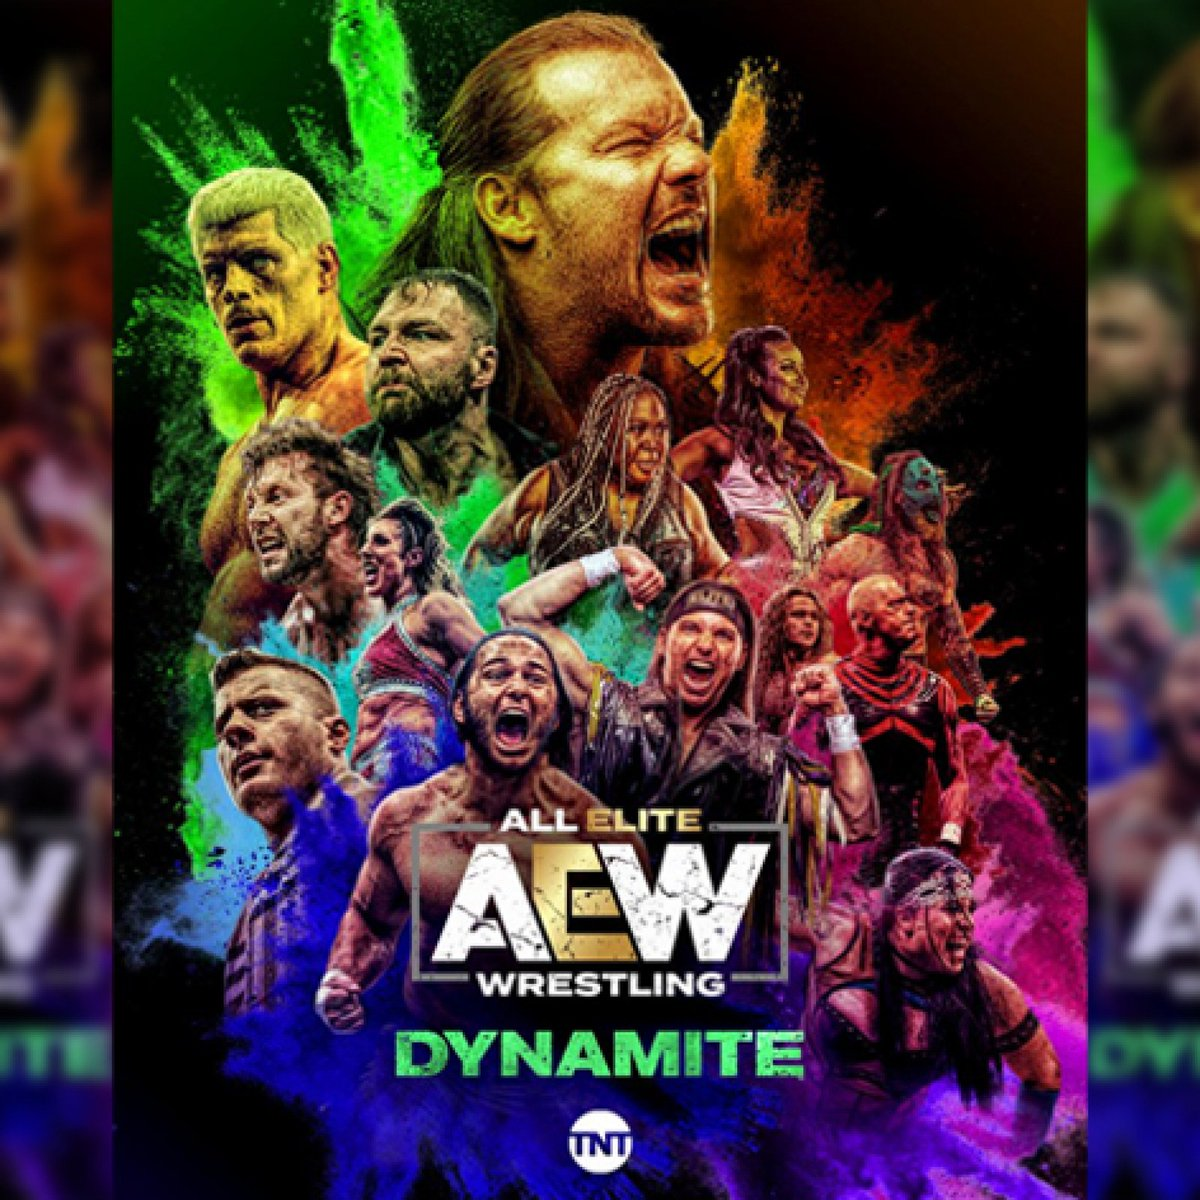 . The Dark Match: Somebody's Listening - @DonDelarente and @DancingElf88 share their commentary with color on AEW Dynamite which featured Lance Archer vs Rey Fenix in the main event